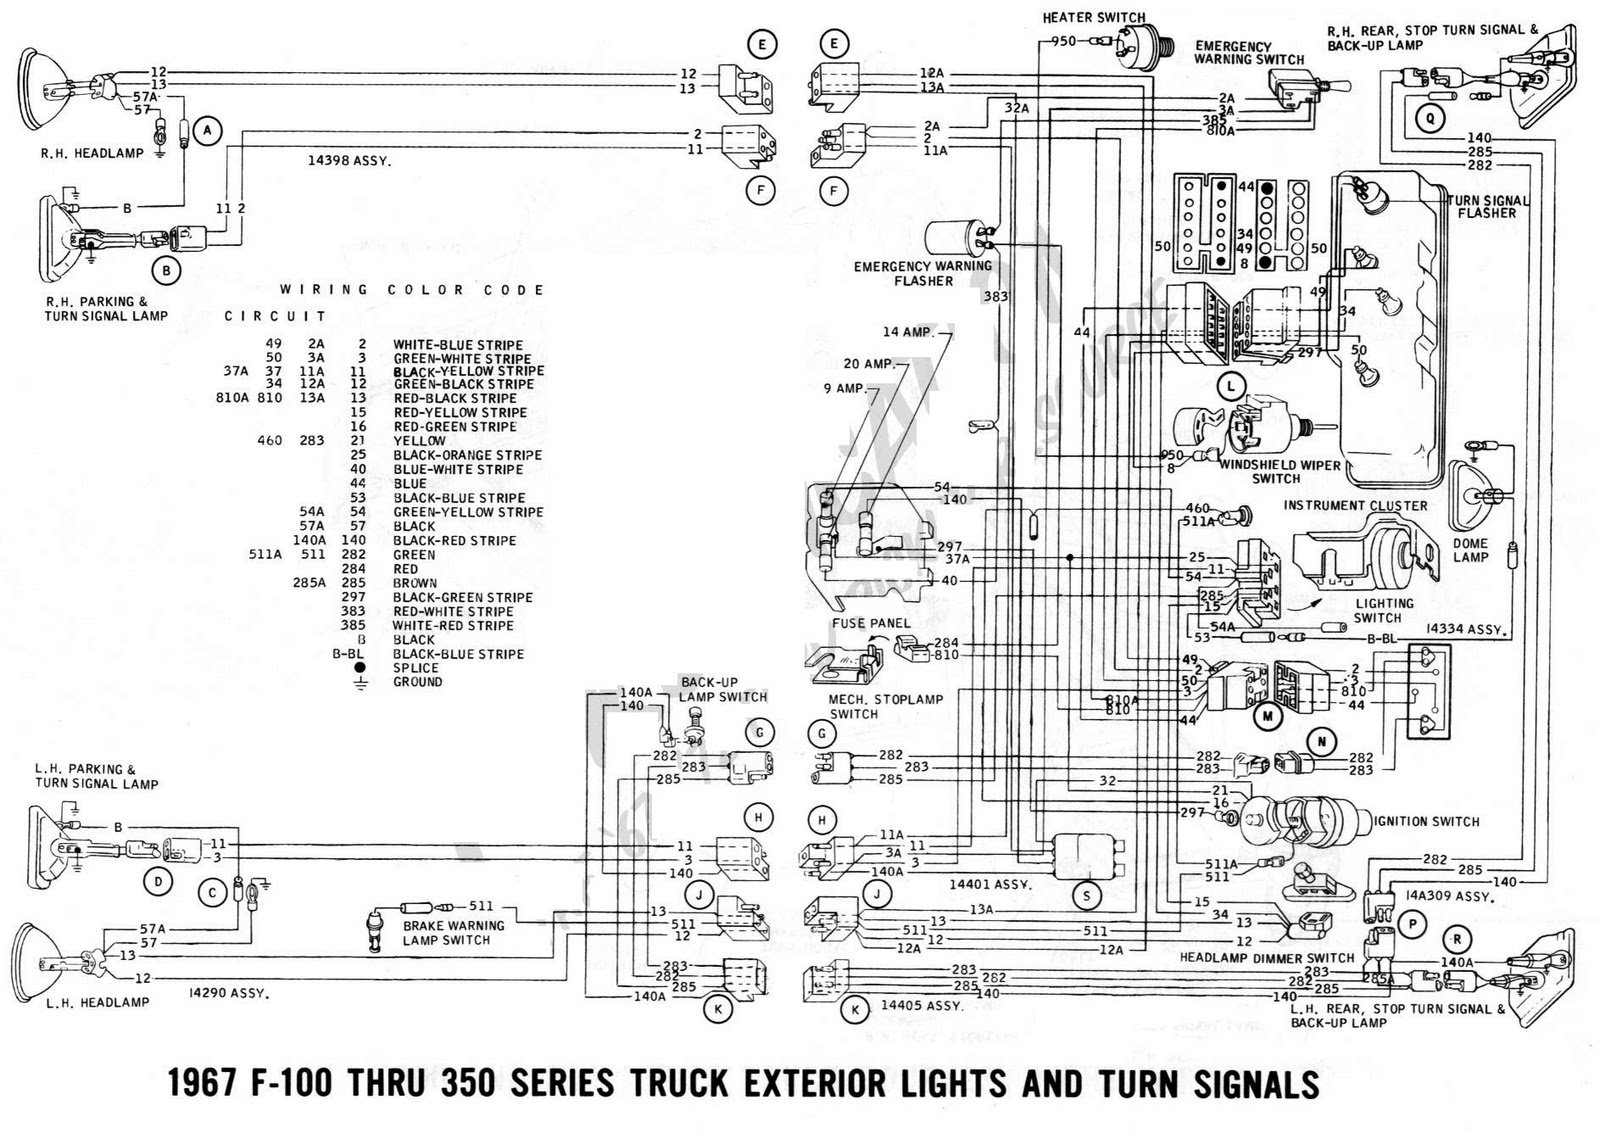 Wiring Diagram For A Ford Fairlane